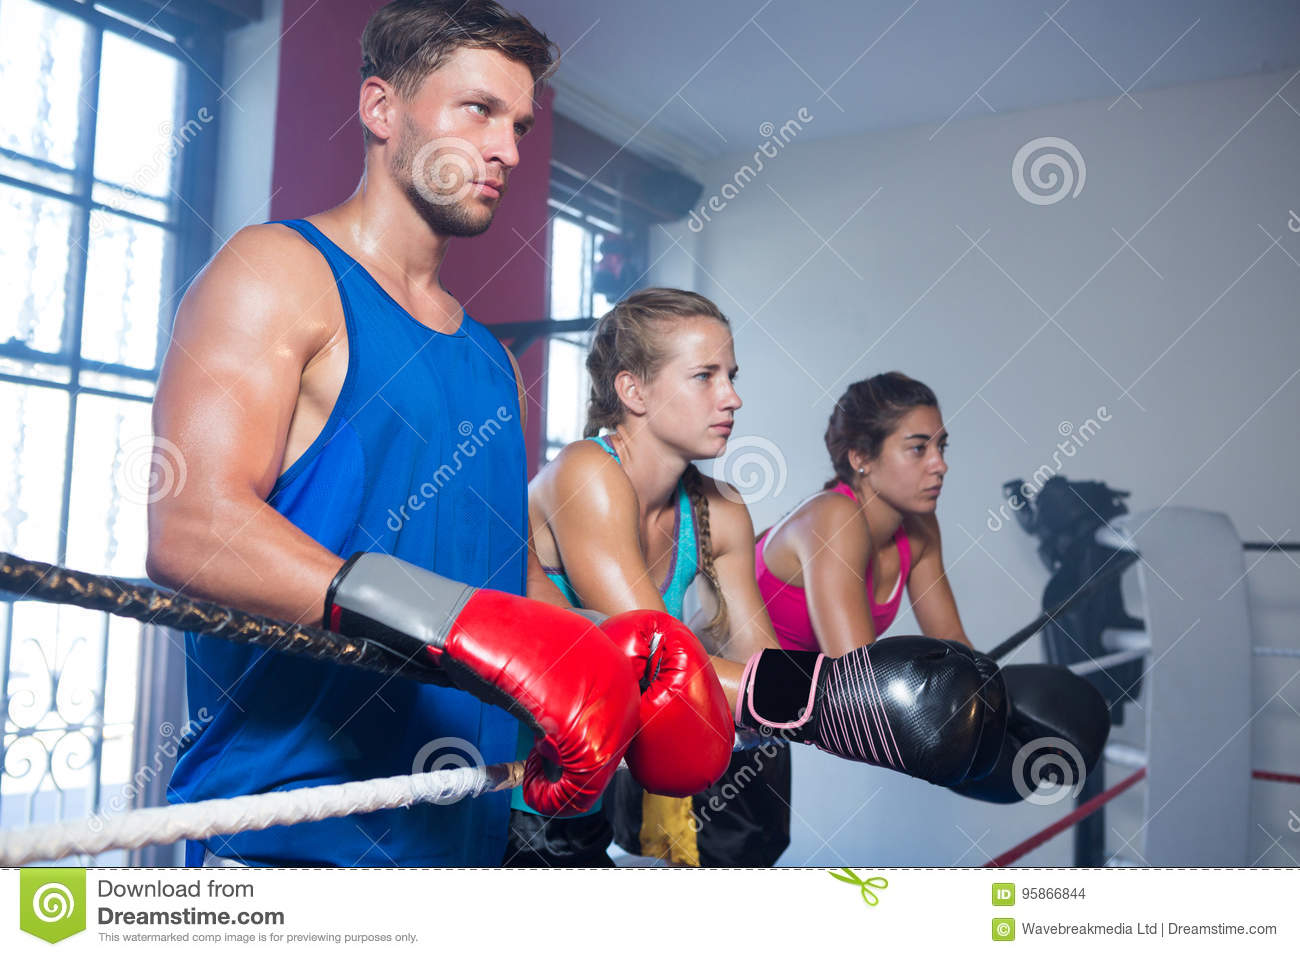 Young male boxer standing by female athletes